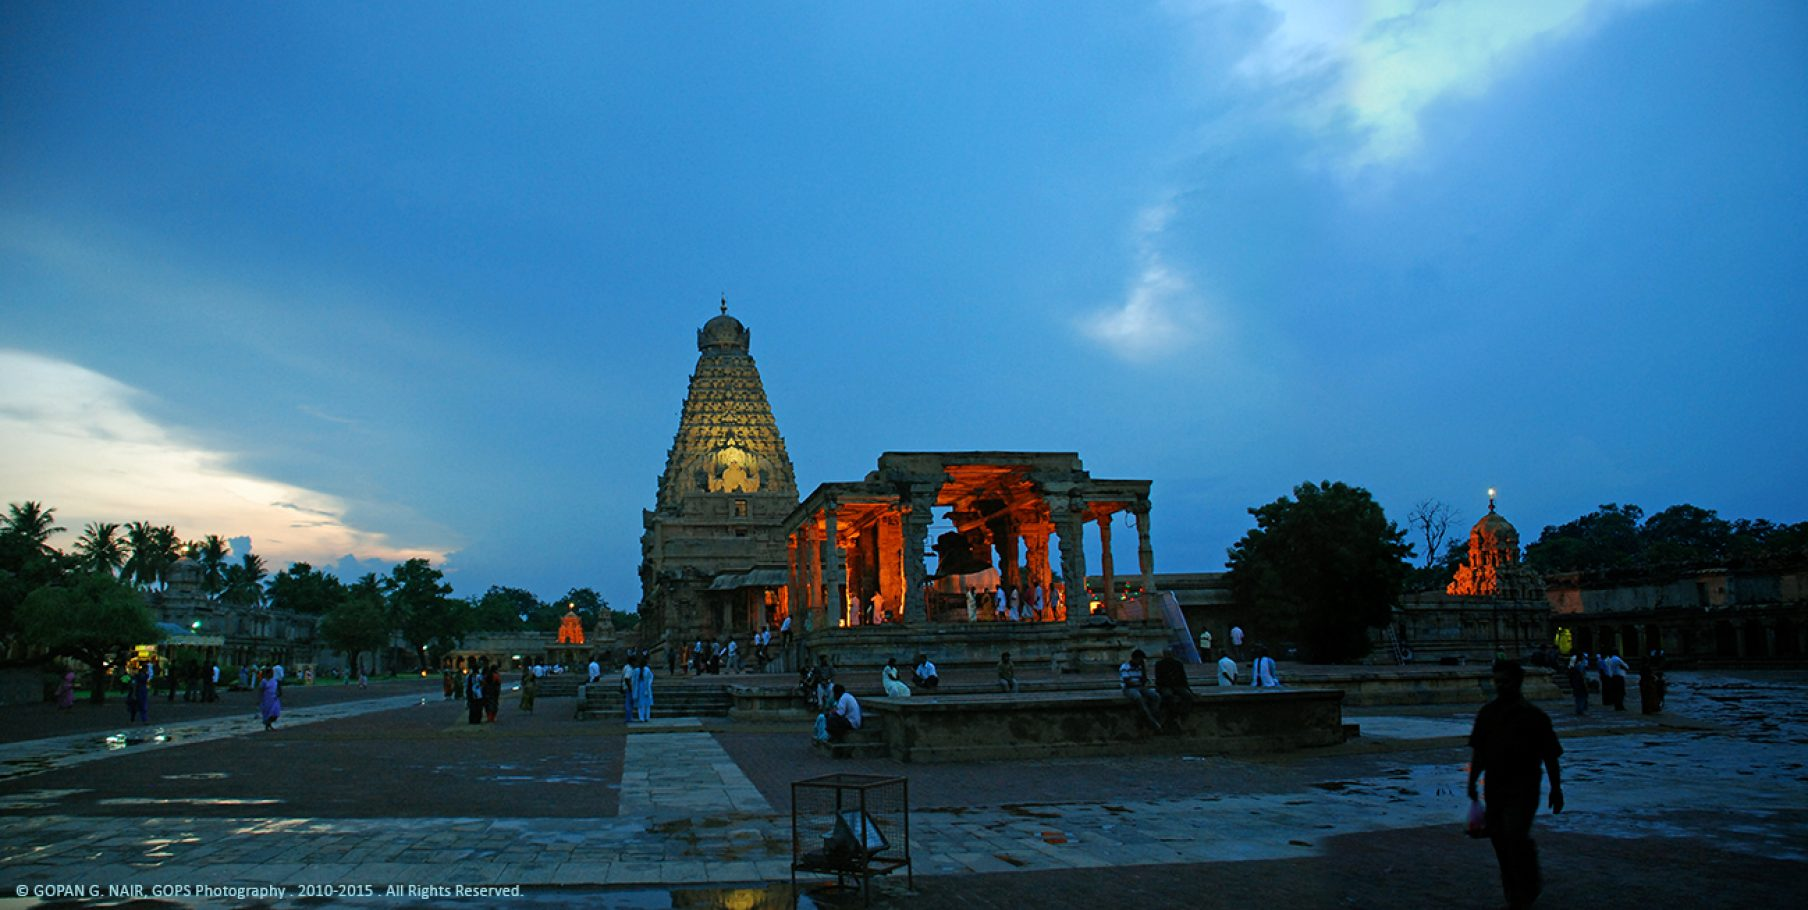 THE BIG TEMPLE, THANJAVUR, TAMIL NADU, INDIA